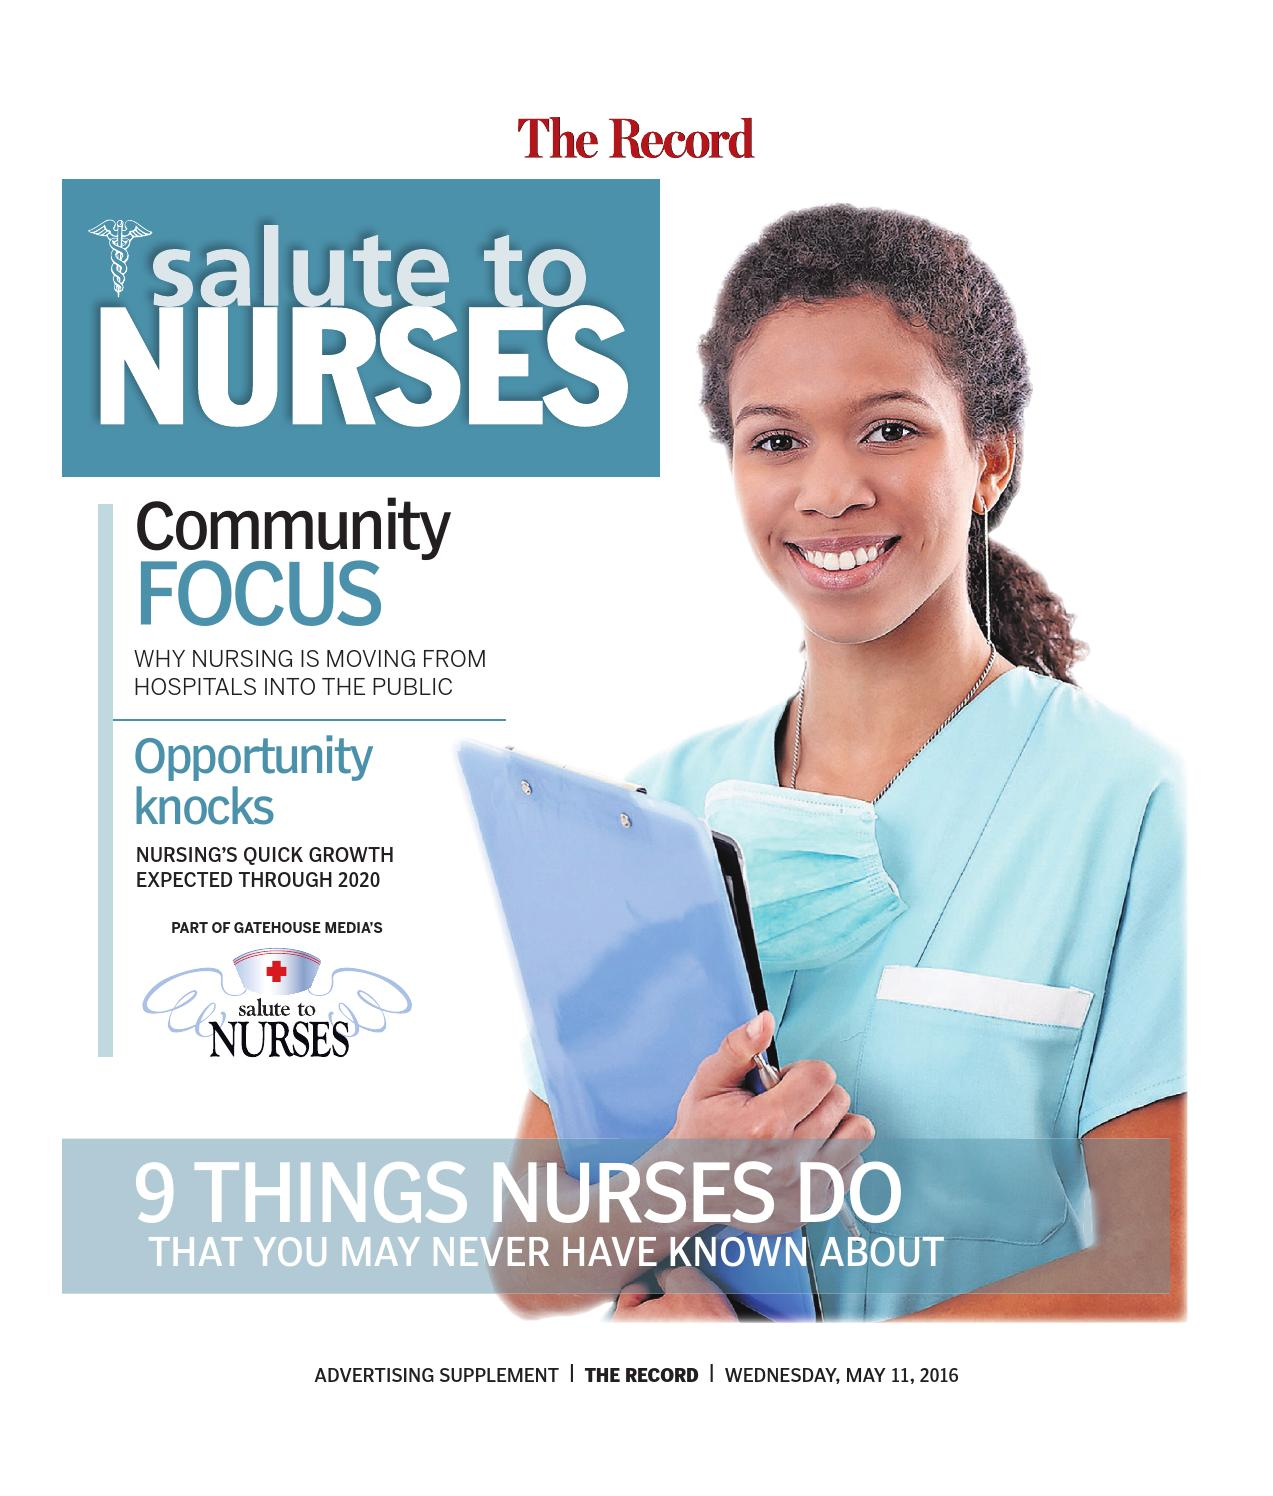 nursing in preventing hospital essay They not only care for people through illness, but they also promote health, prevent diseases and educate the public  of nursing  yours is a good essay, but i .